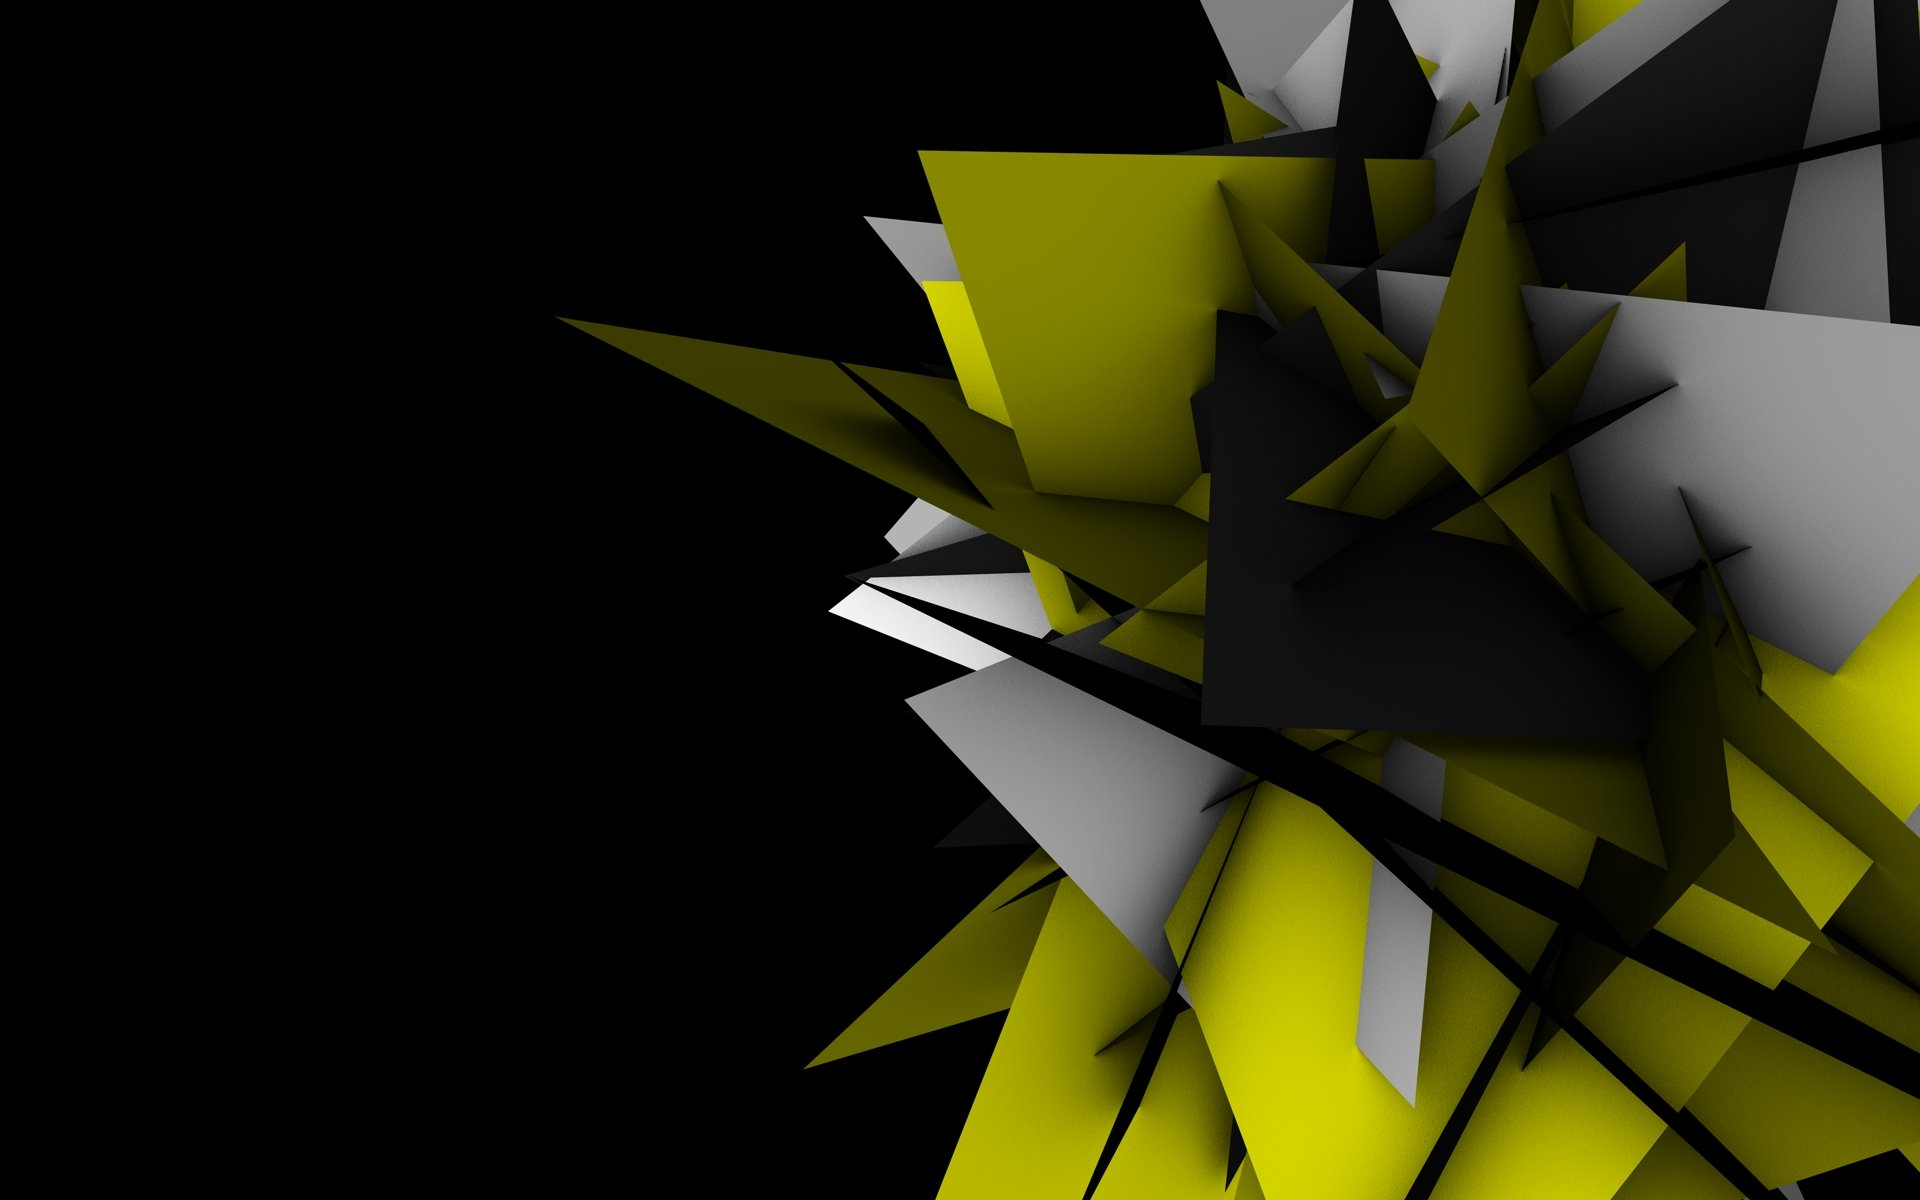 abstract shapes geometry digital art black background wallpaper